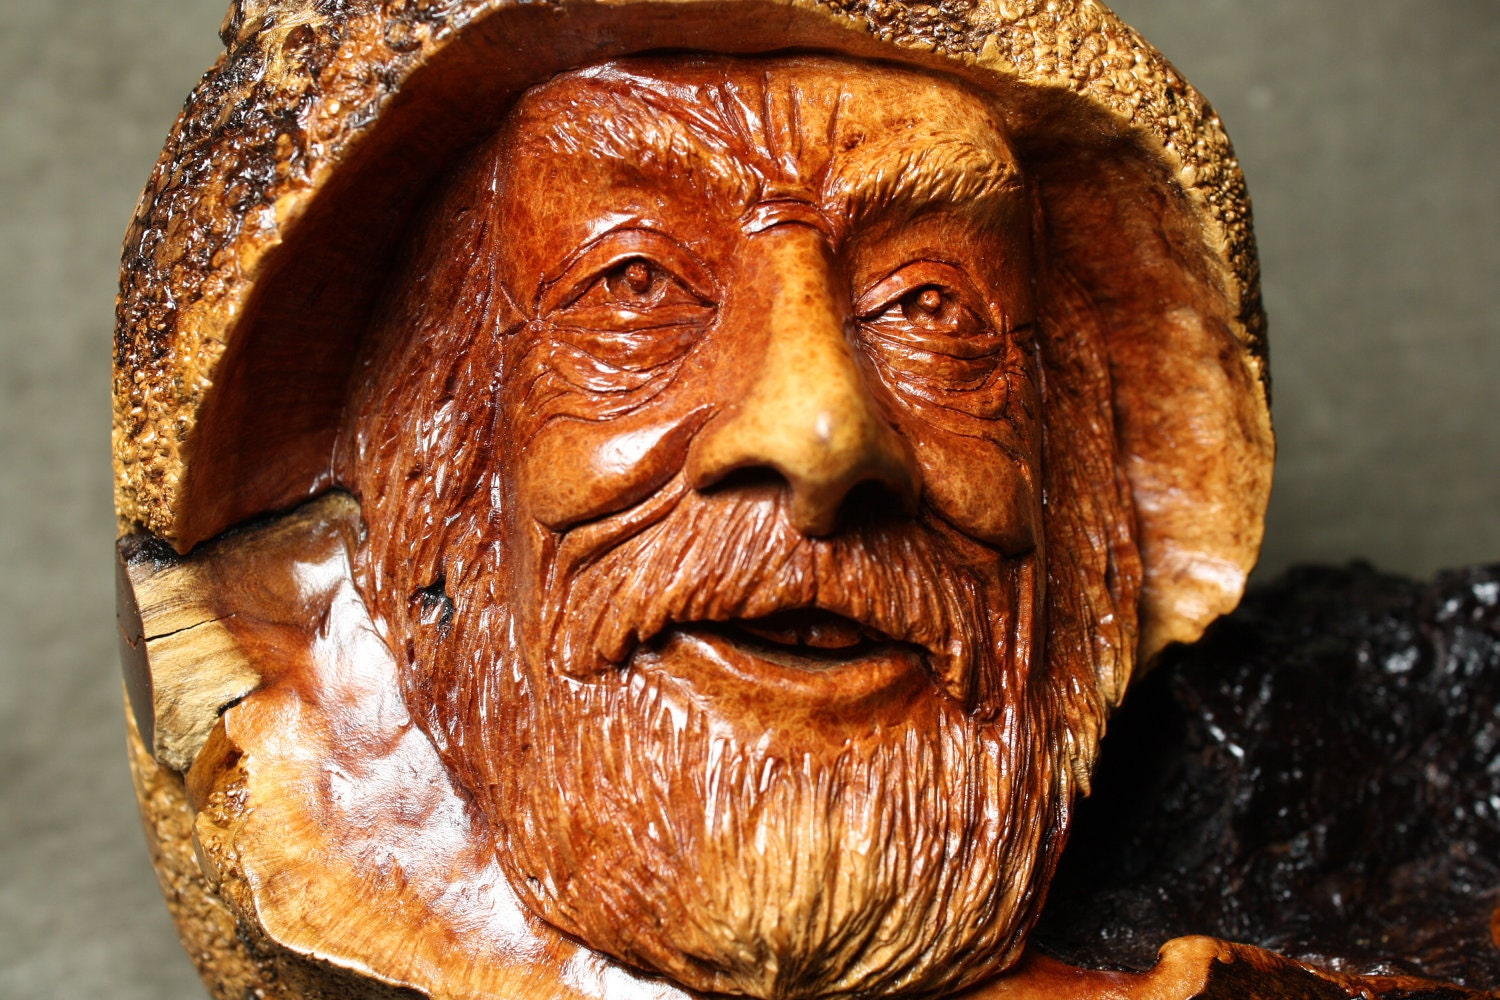 Mountain man wood carving carved by gary wiz burns